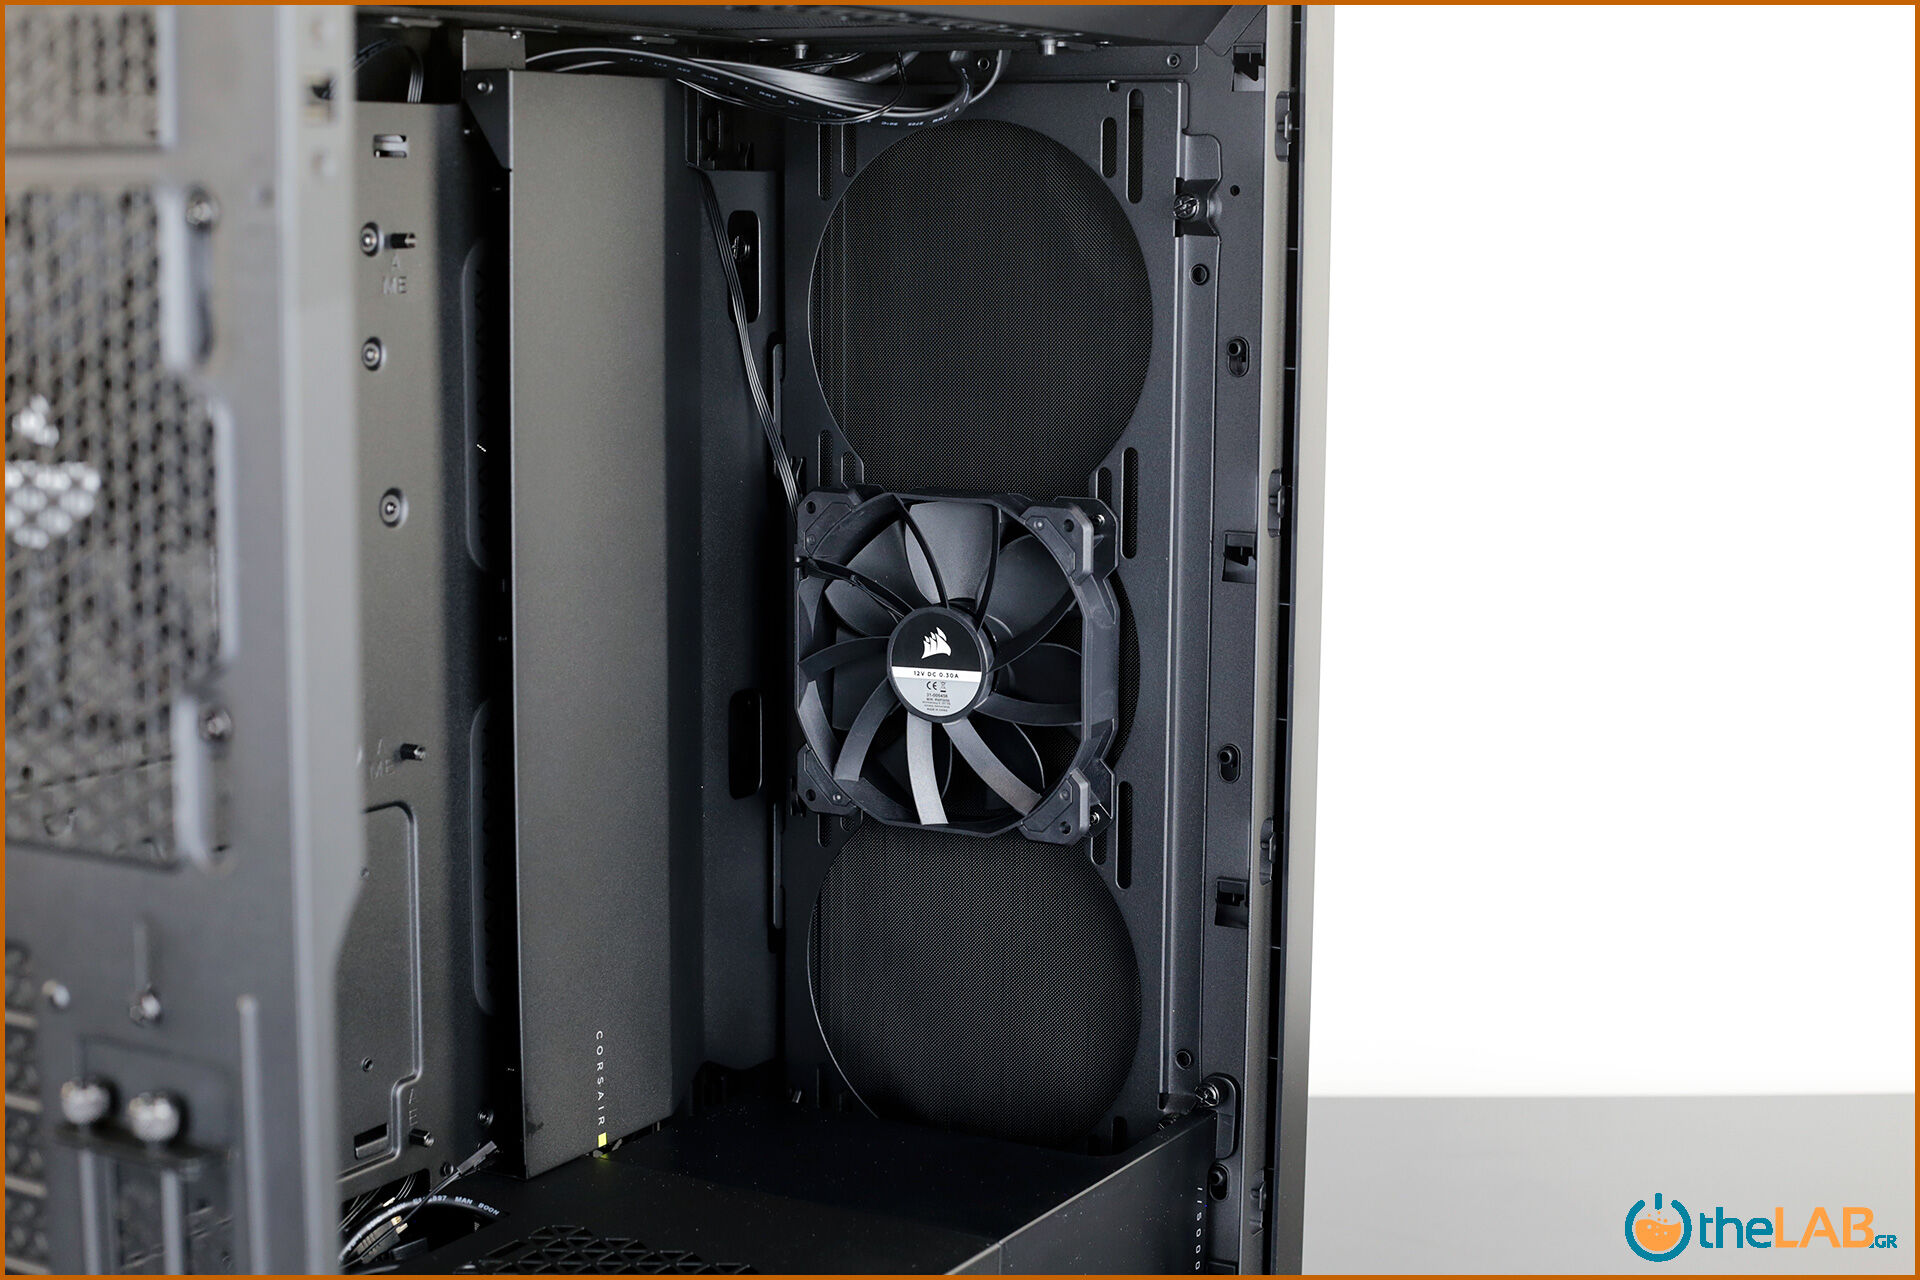 Corsair_icue_5000D__case_smart_exterior_interior_mid_tower_gaming_case_smart_review_image652.jpg